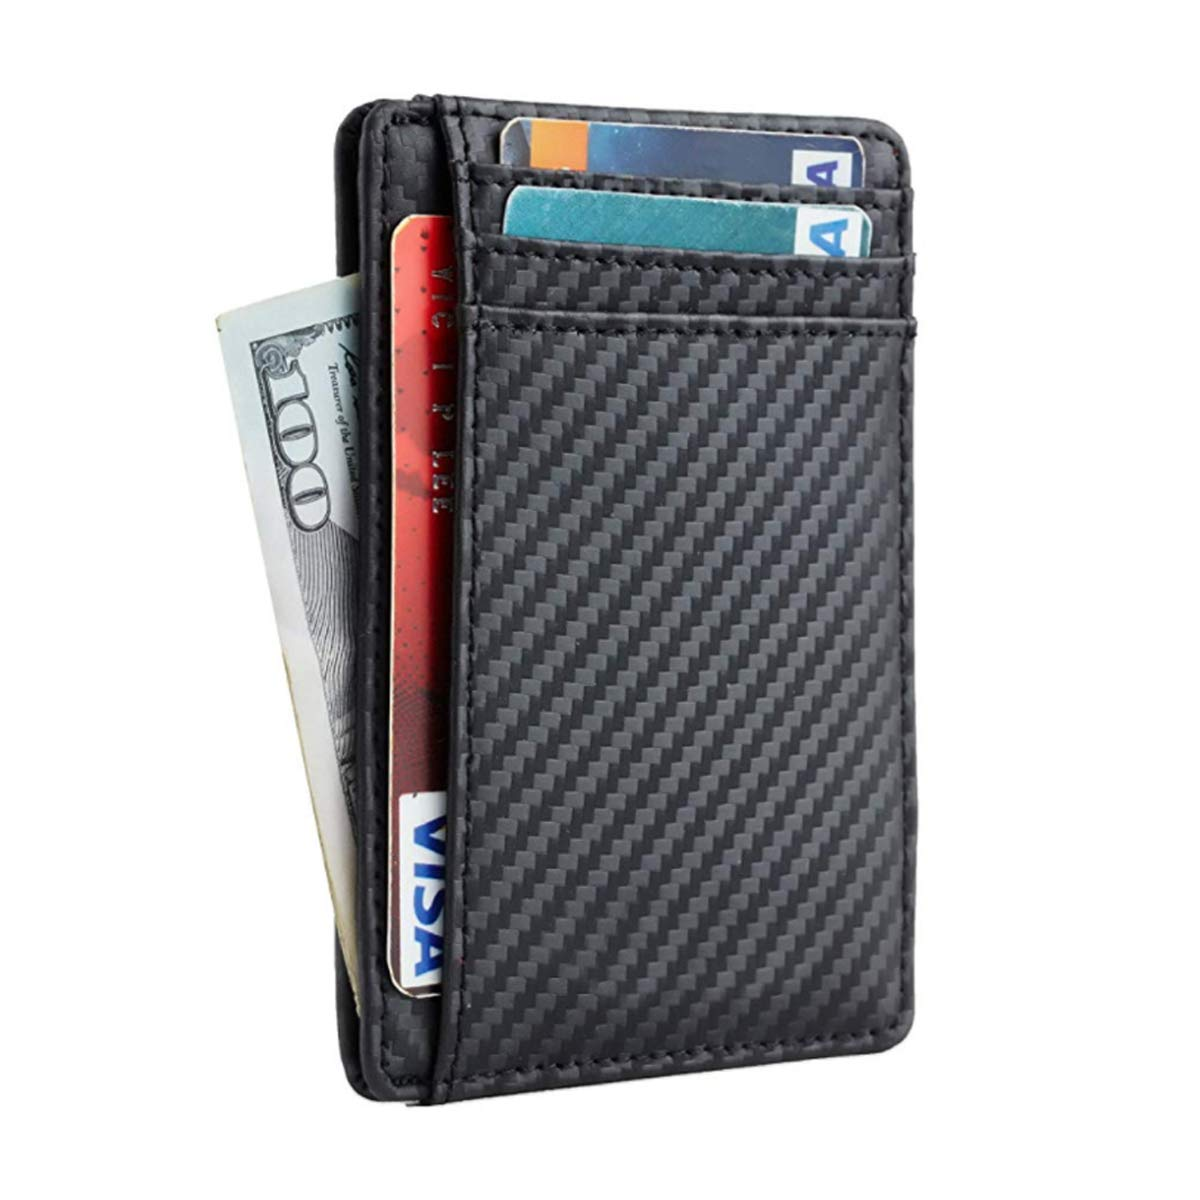 Black RFID Blocking Credit Card Holder for Men Women Front Pocket Minimalist Leather Slim Wallets